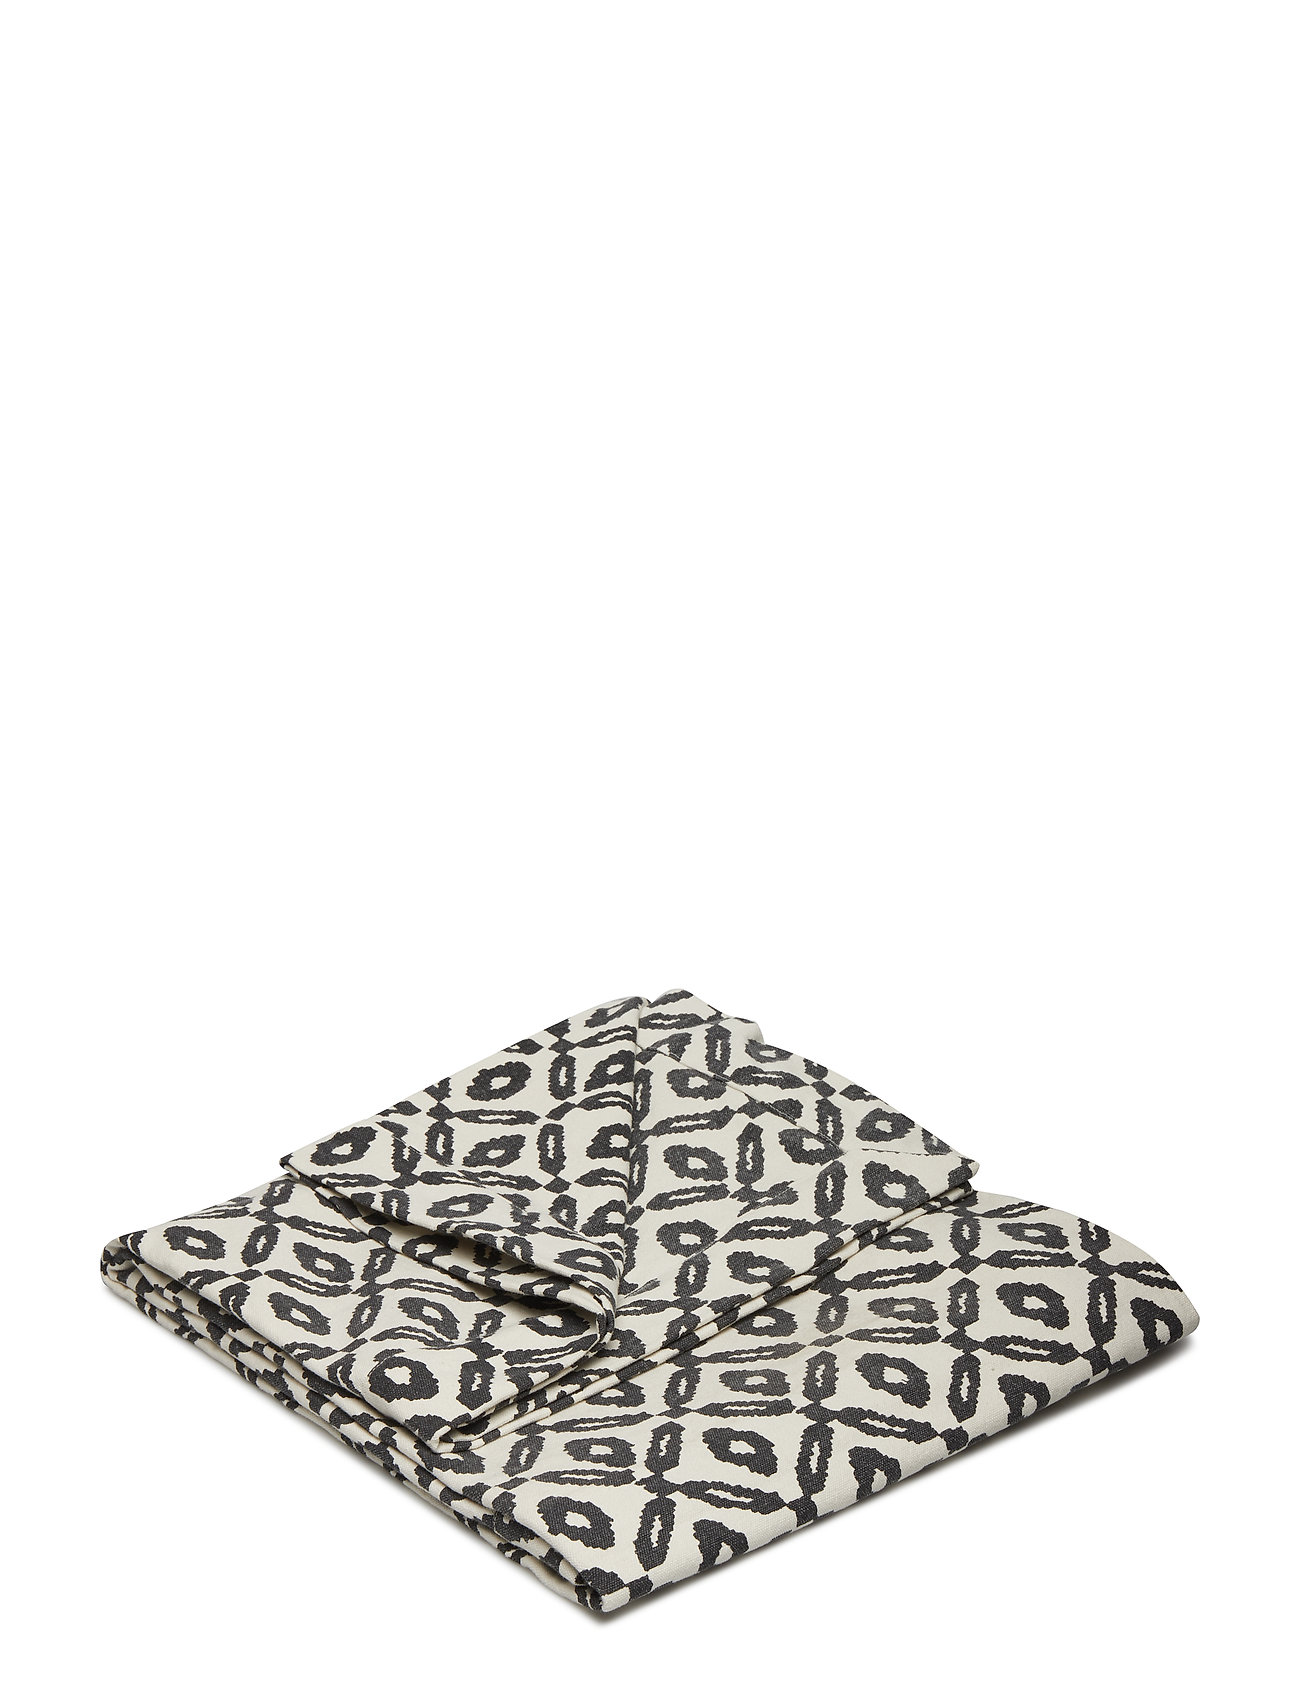 DAY Home Day Printed Canvas blanket - BLACK/WHITE, PRINTED